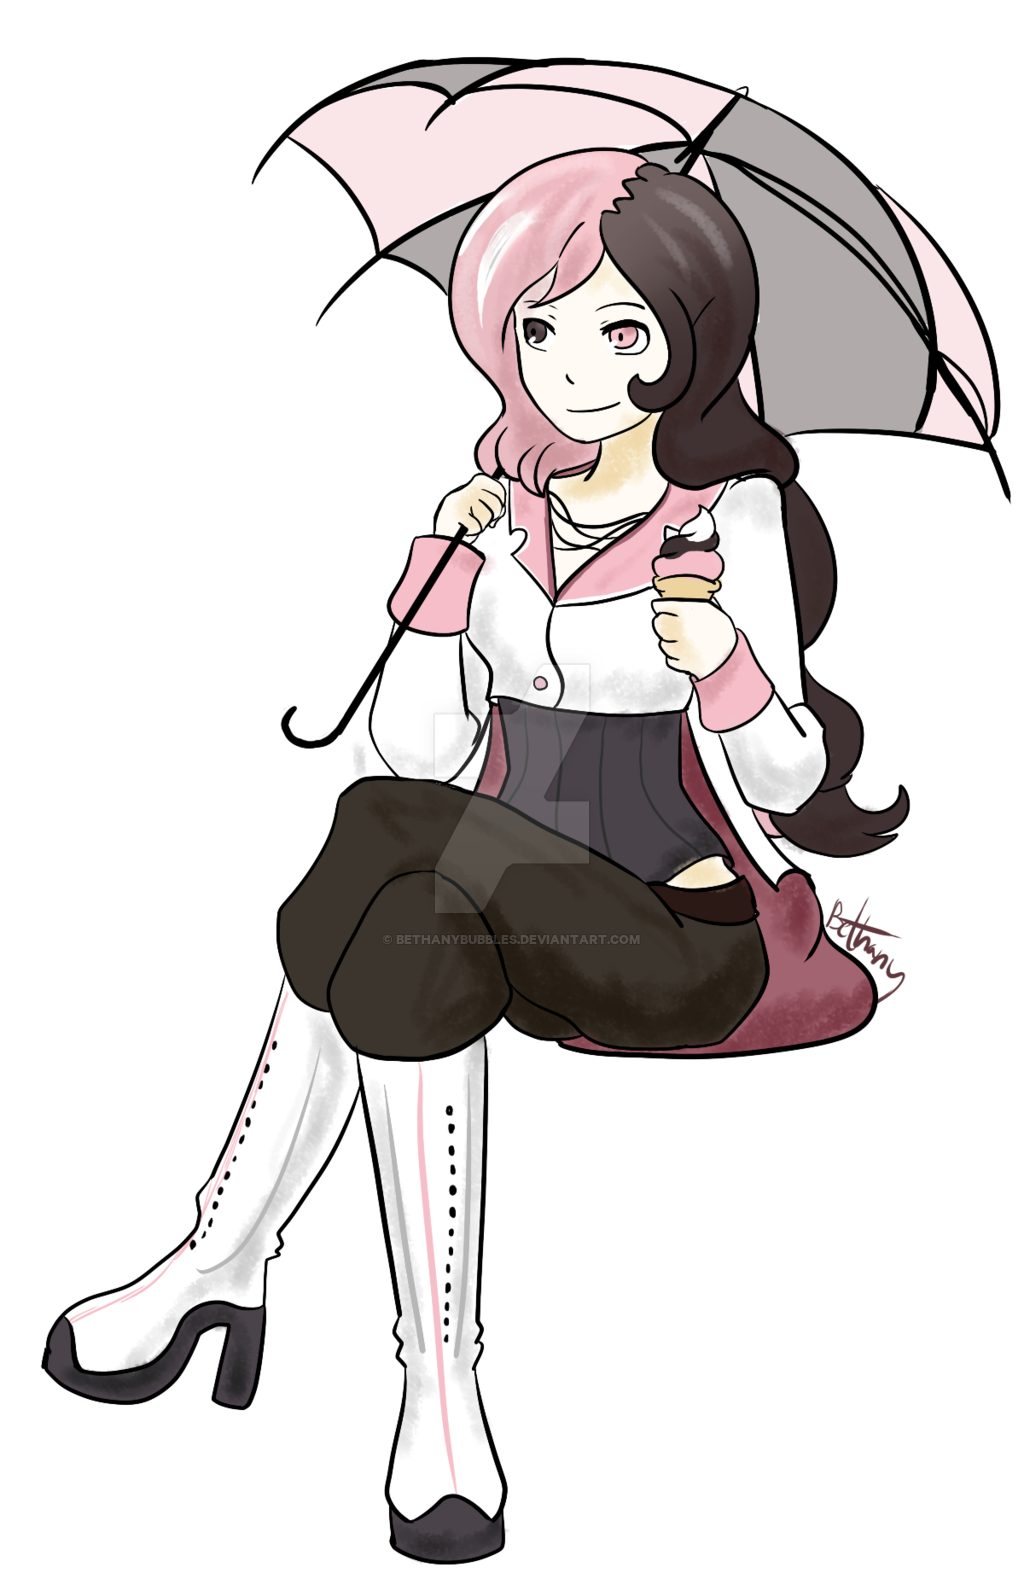 RWBY Neo by BethanyBubbles on DeviantArt.